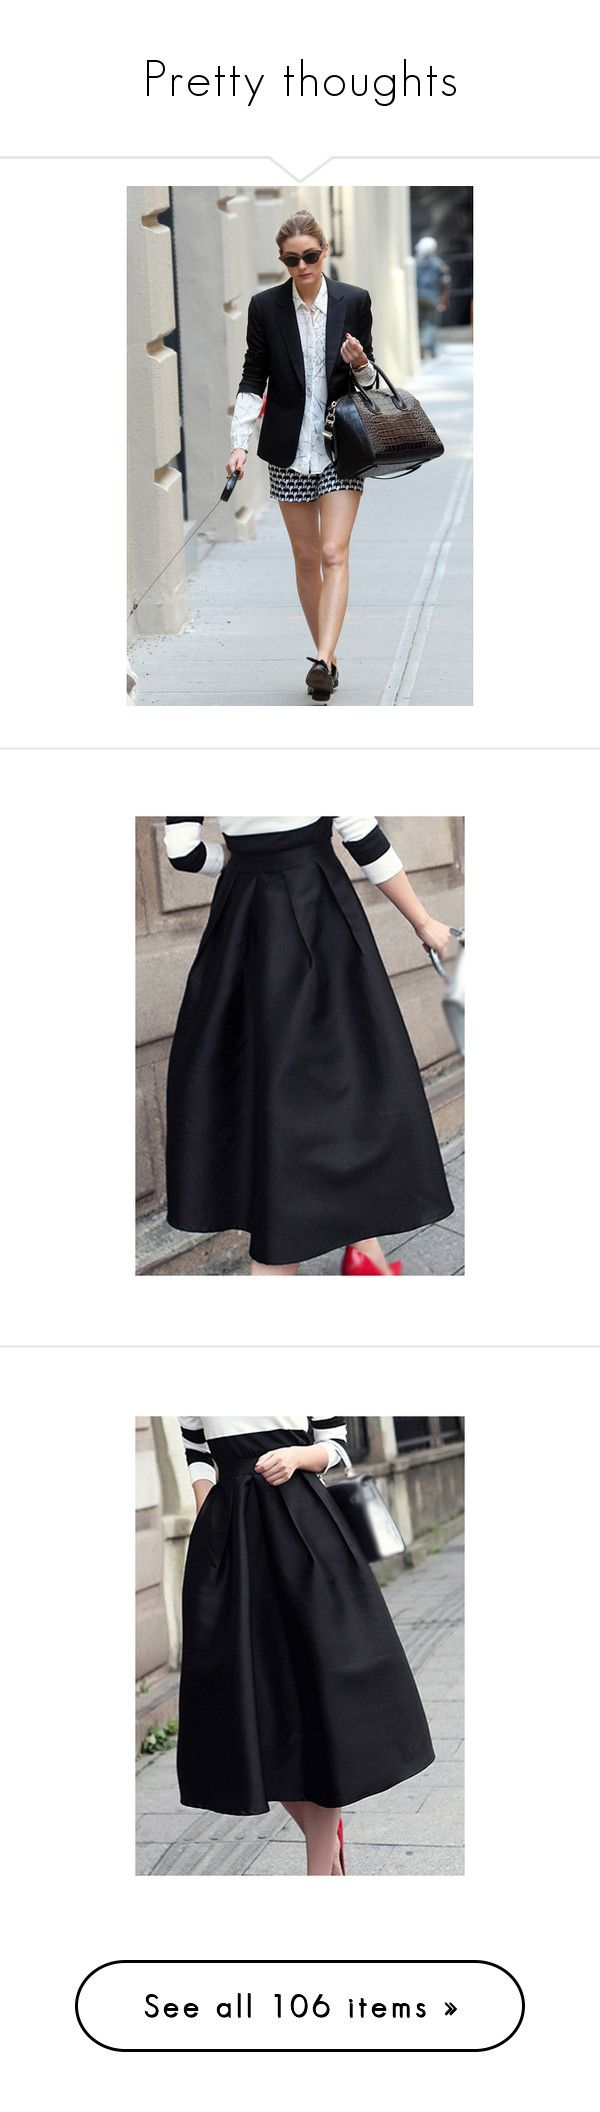 """""""Pretty thoughts"""" by clothesmonkey ❤ liked on Polyvore featuring skirts, a line skirt, vintage high waisted skirts, circle skirts, a line midi skirt, knee length a line skirt, black, vintage midi skirt, midi circle skirt and high waist skirt"""